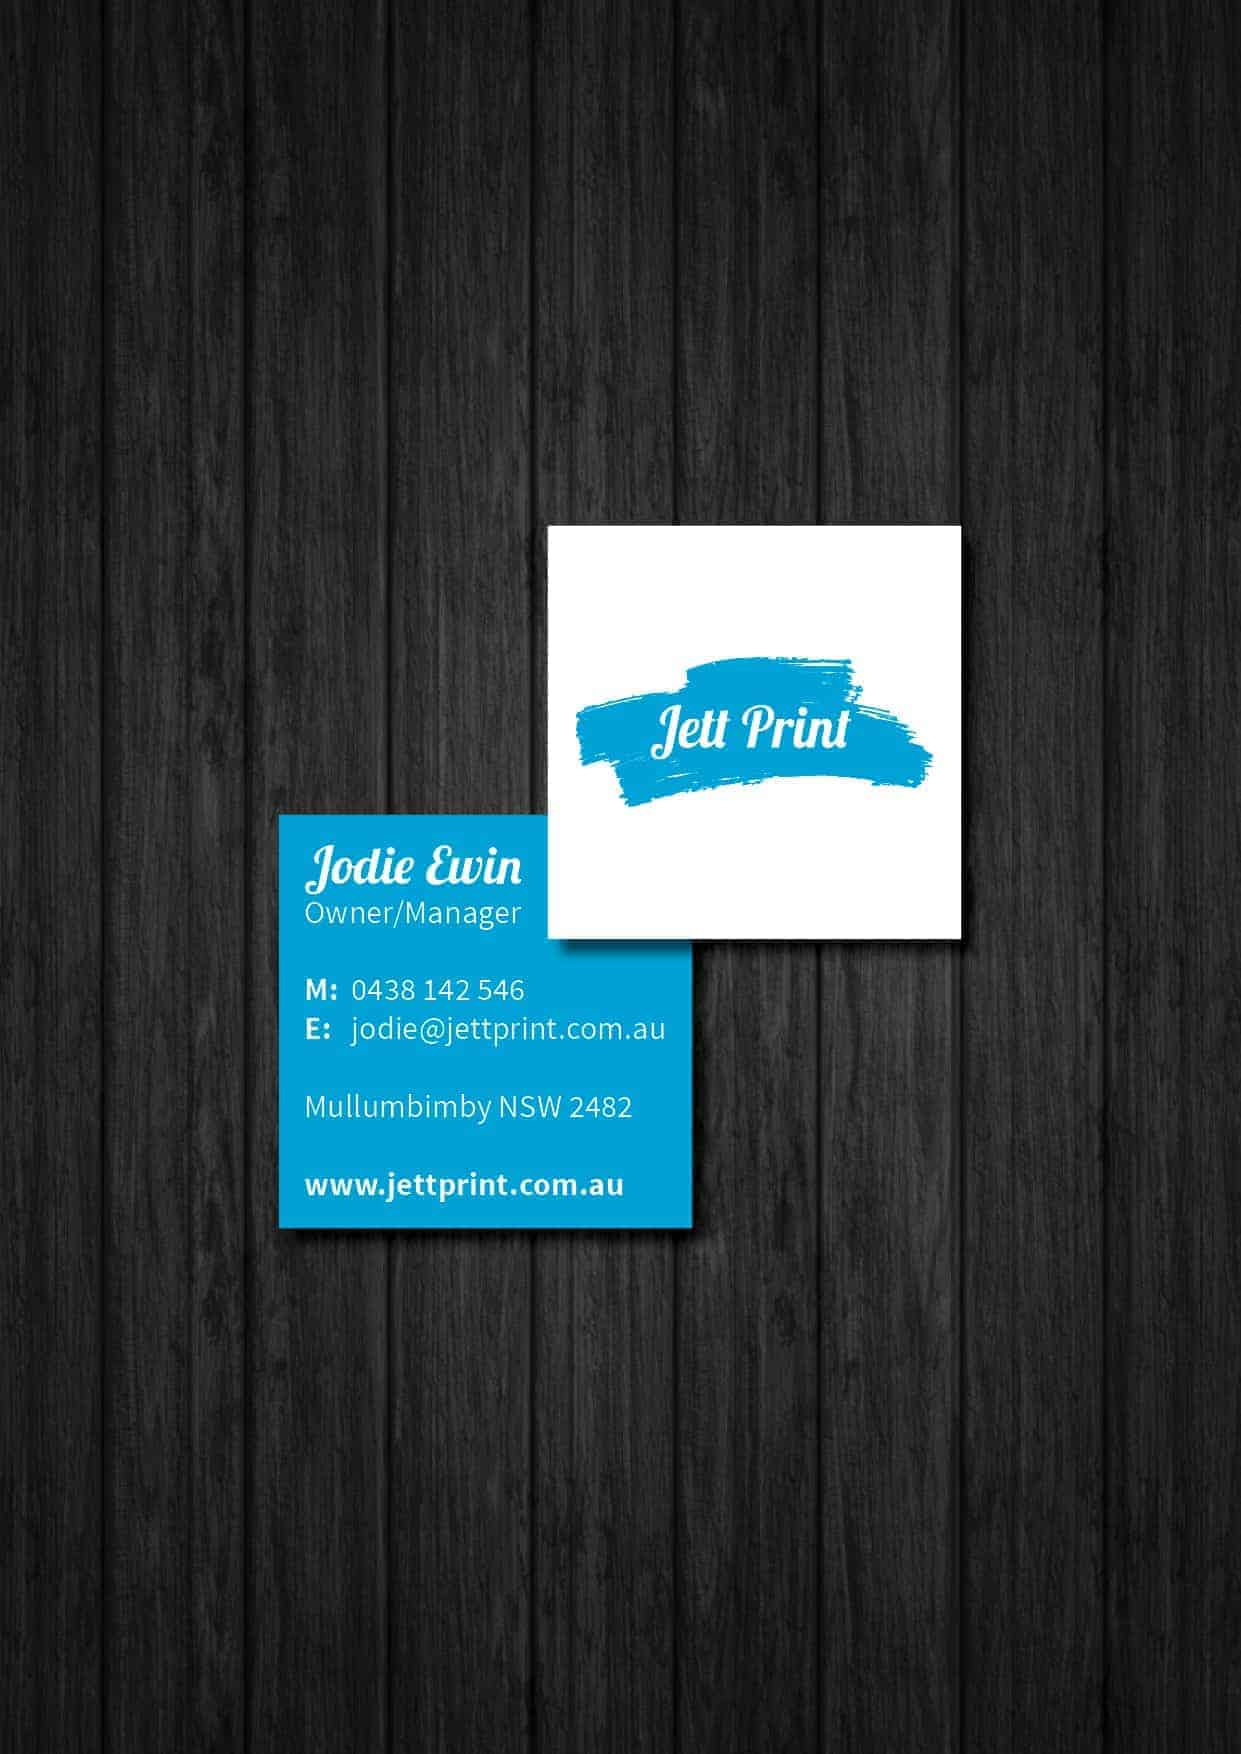 Square business cards printing gold coast brisbane tweed byron bay jett print square business cards reheart Image collections